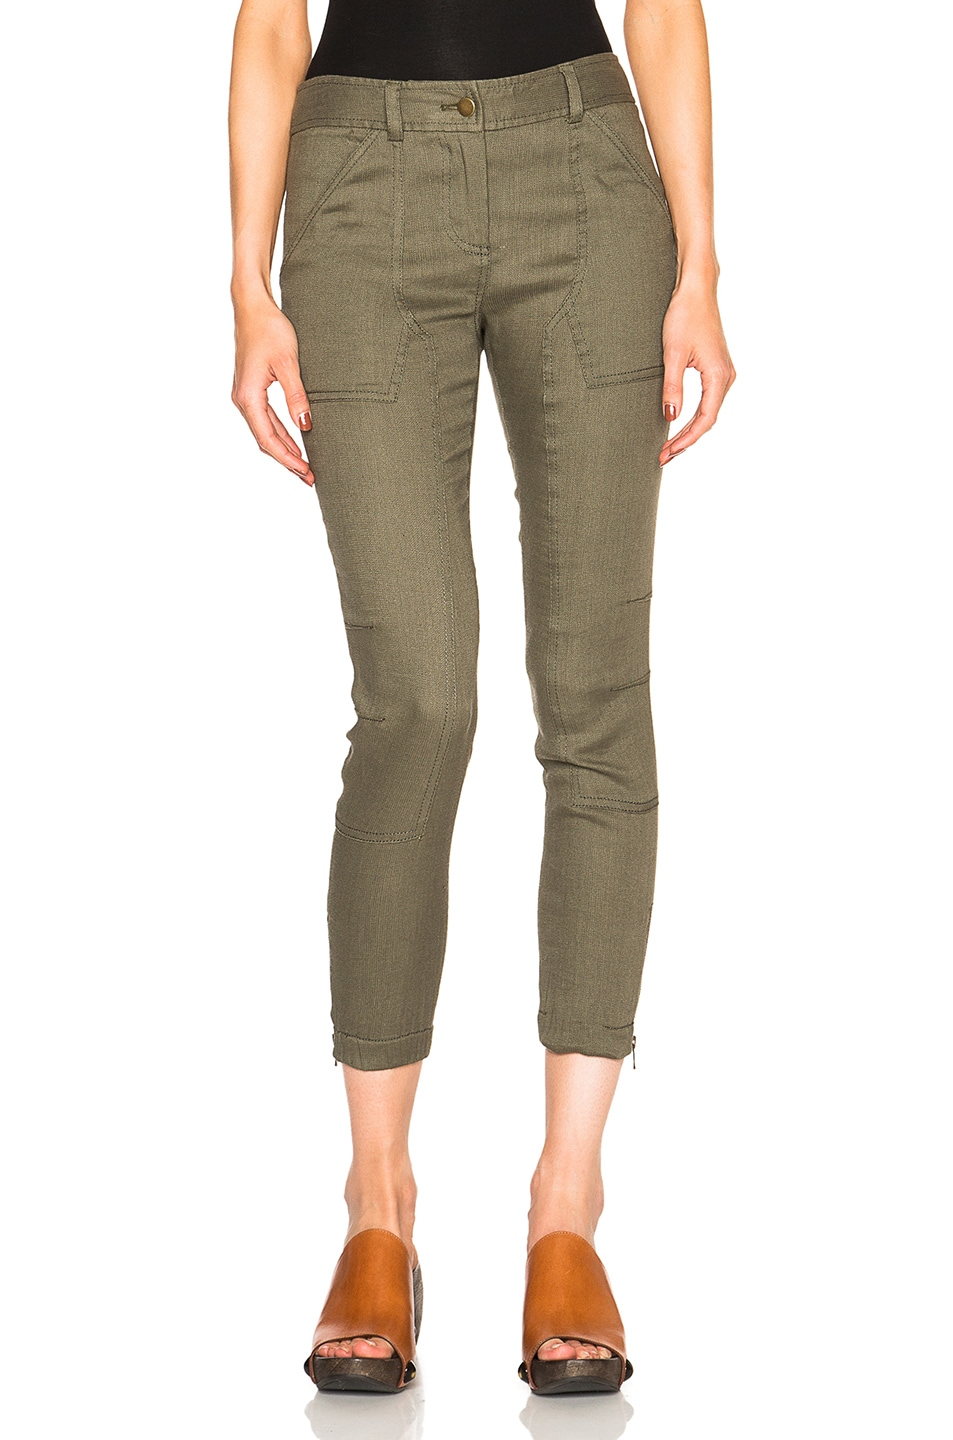 Image 1 of Veronica Beard Caladium Cargo Pants in Army Green